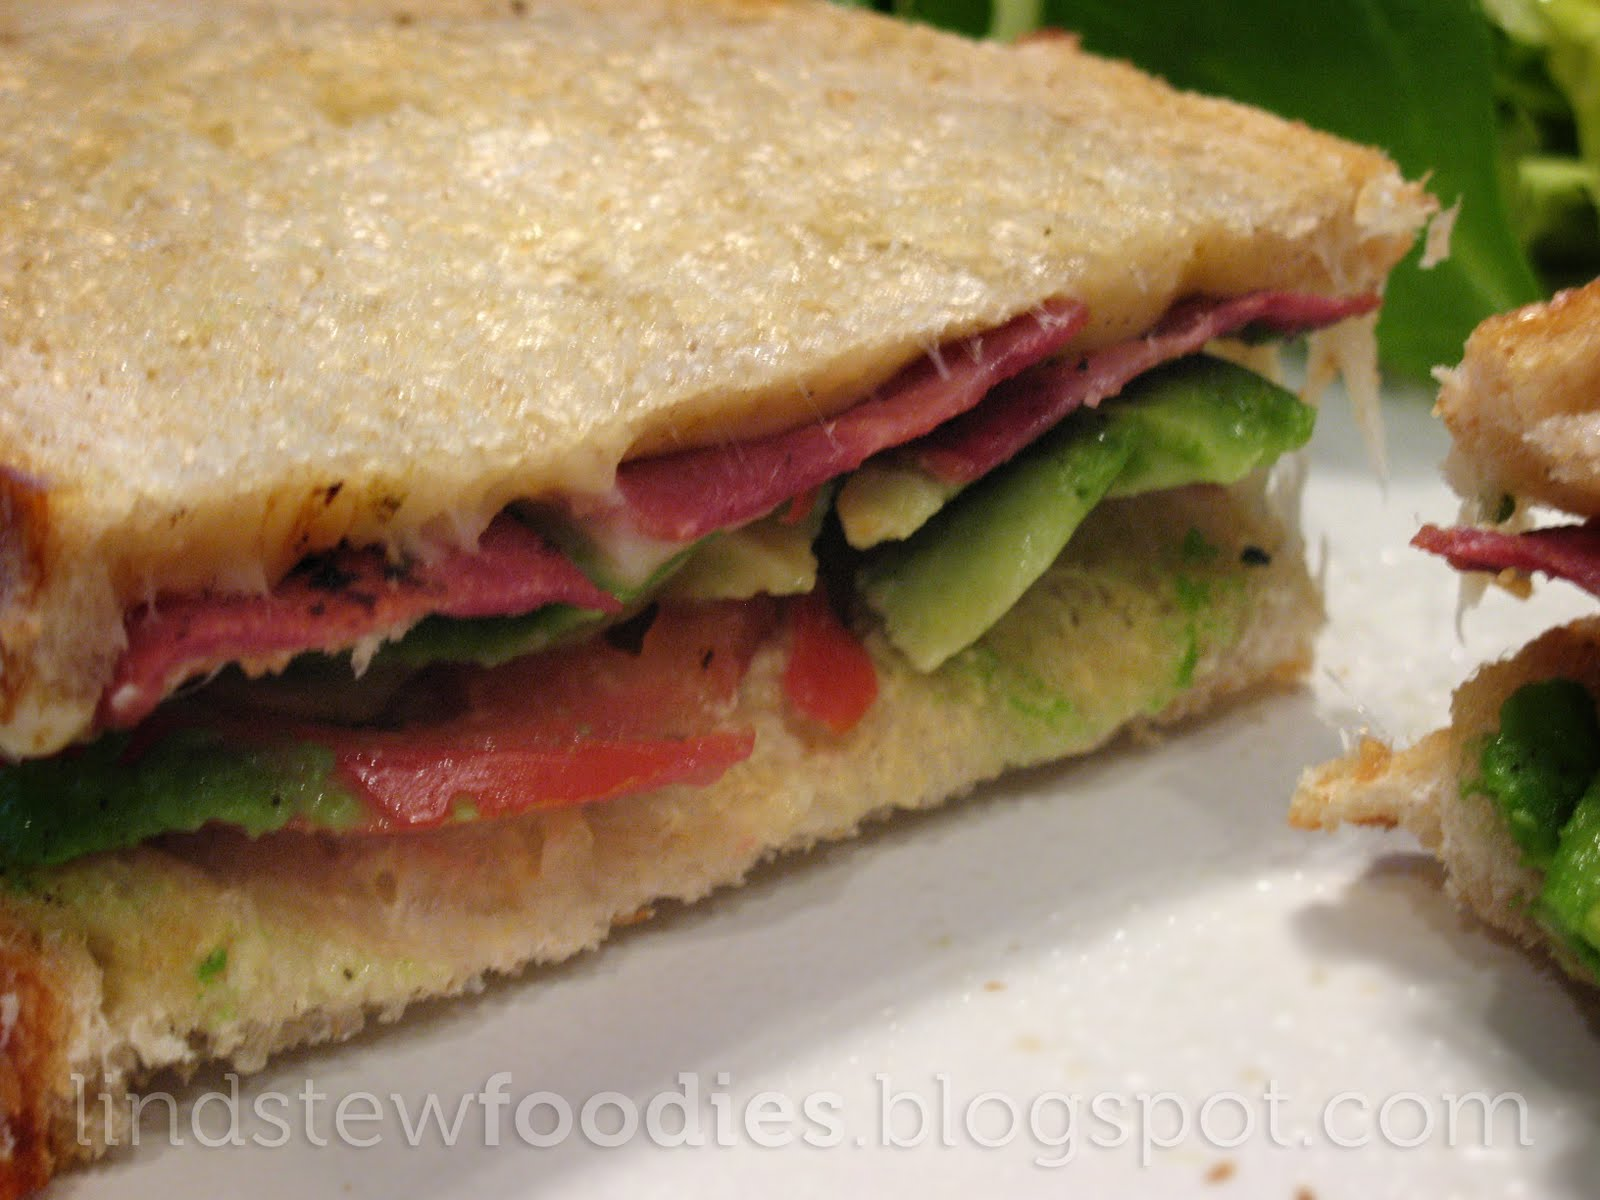 lindstew foodies : :: Grown-up Grilled Cheese Sandwich